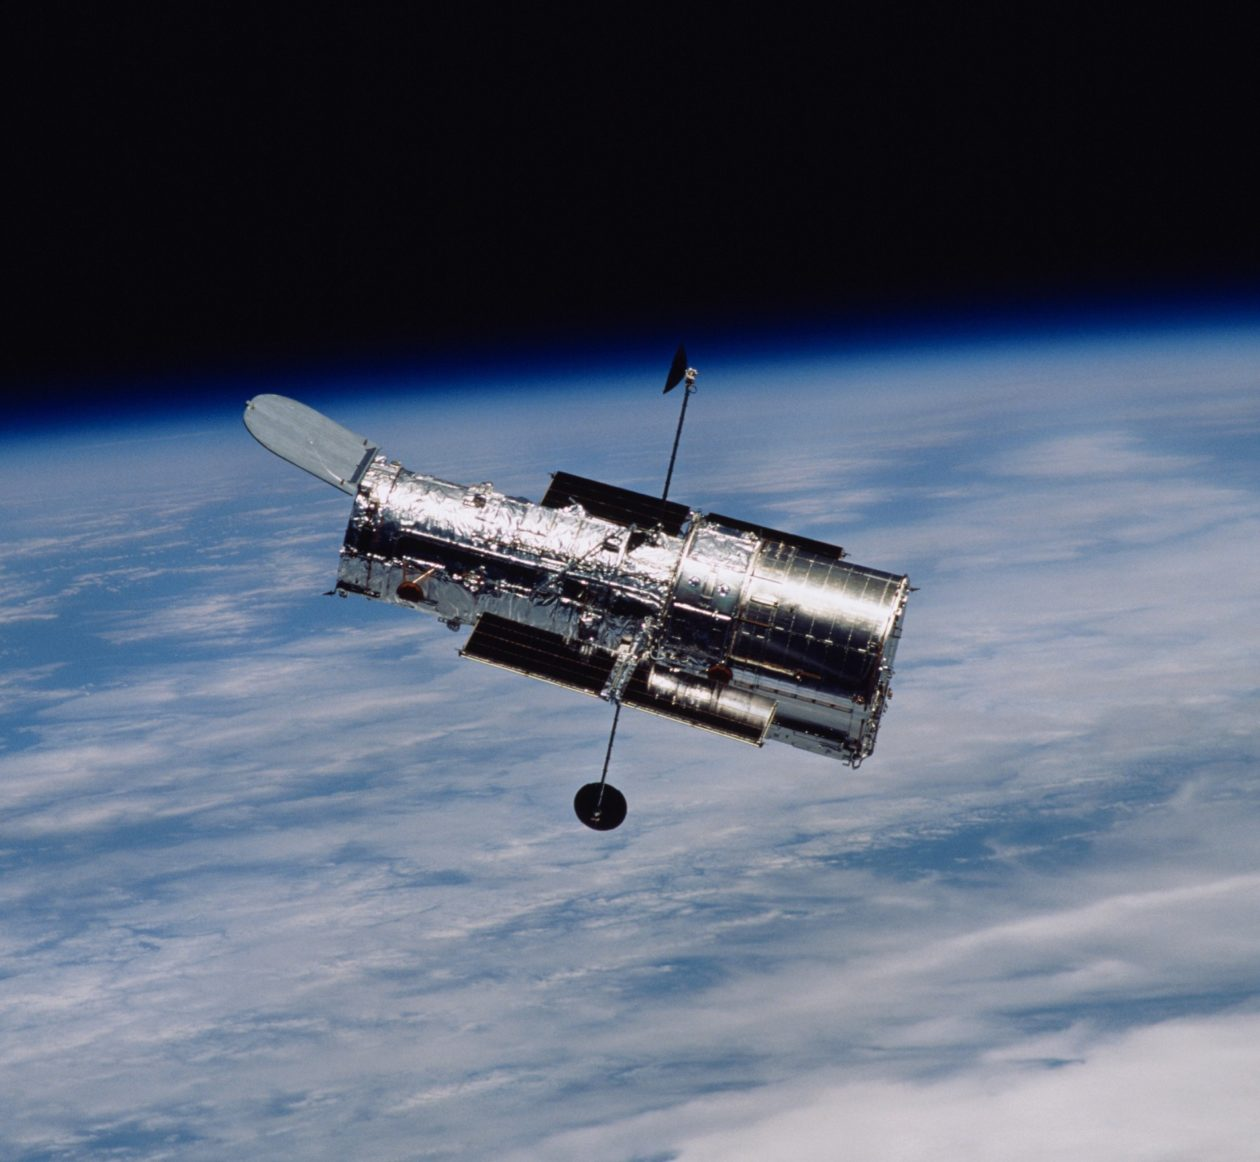 Hubble Space Telescope Is Back At Work After Breakdown